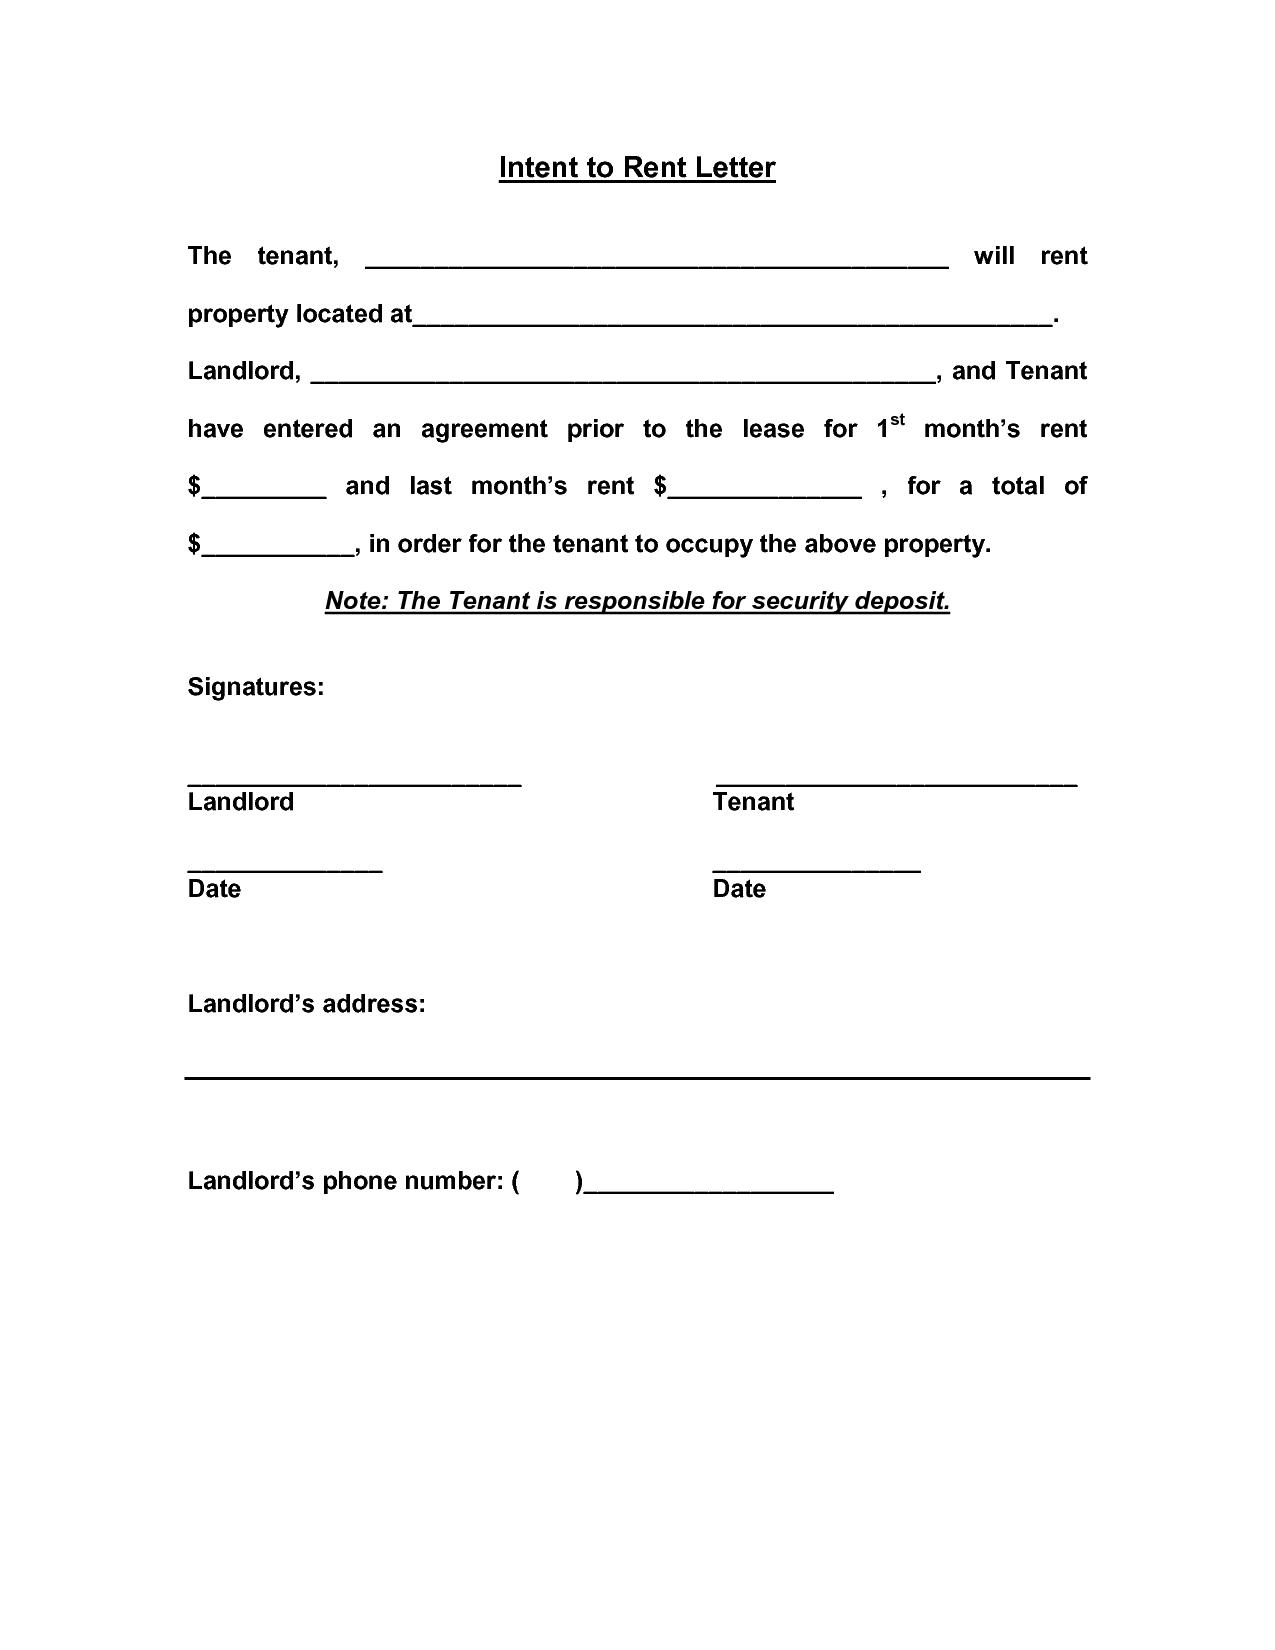 Letter Of Intent Commercial Lease Template - Mercial Real Estate Lease Letter Intent Template Purchase